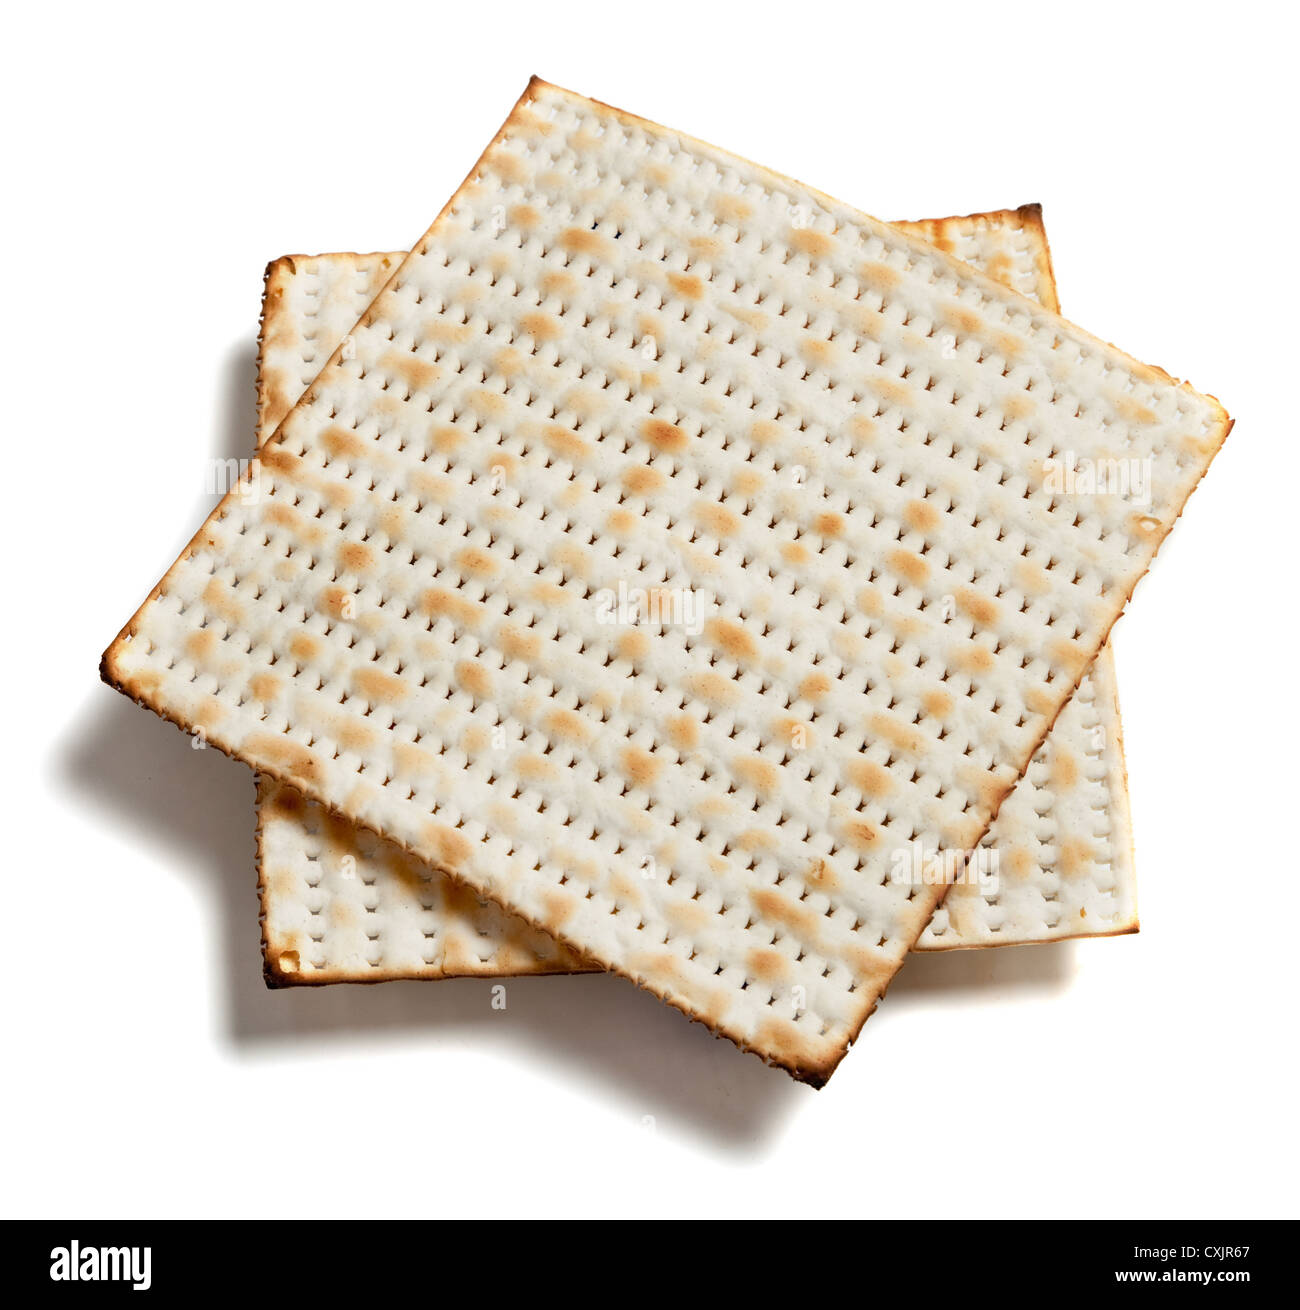 Stack of Matzo bread on a white background - Stock Image